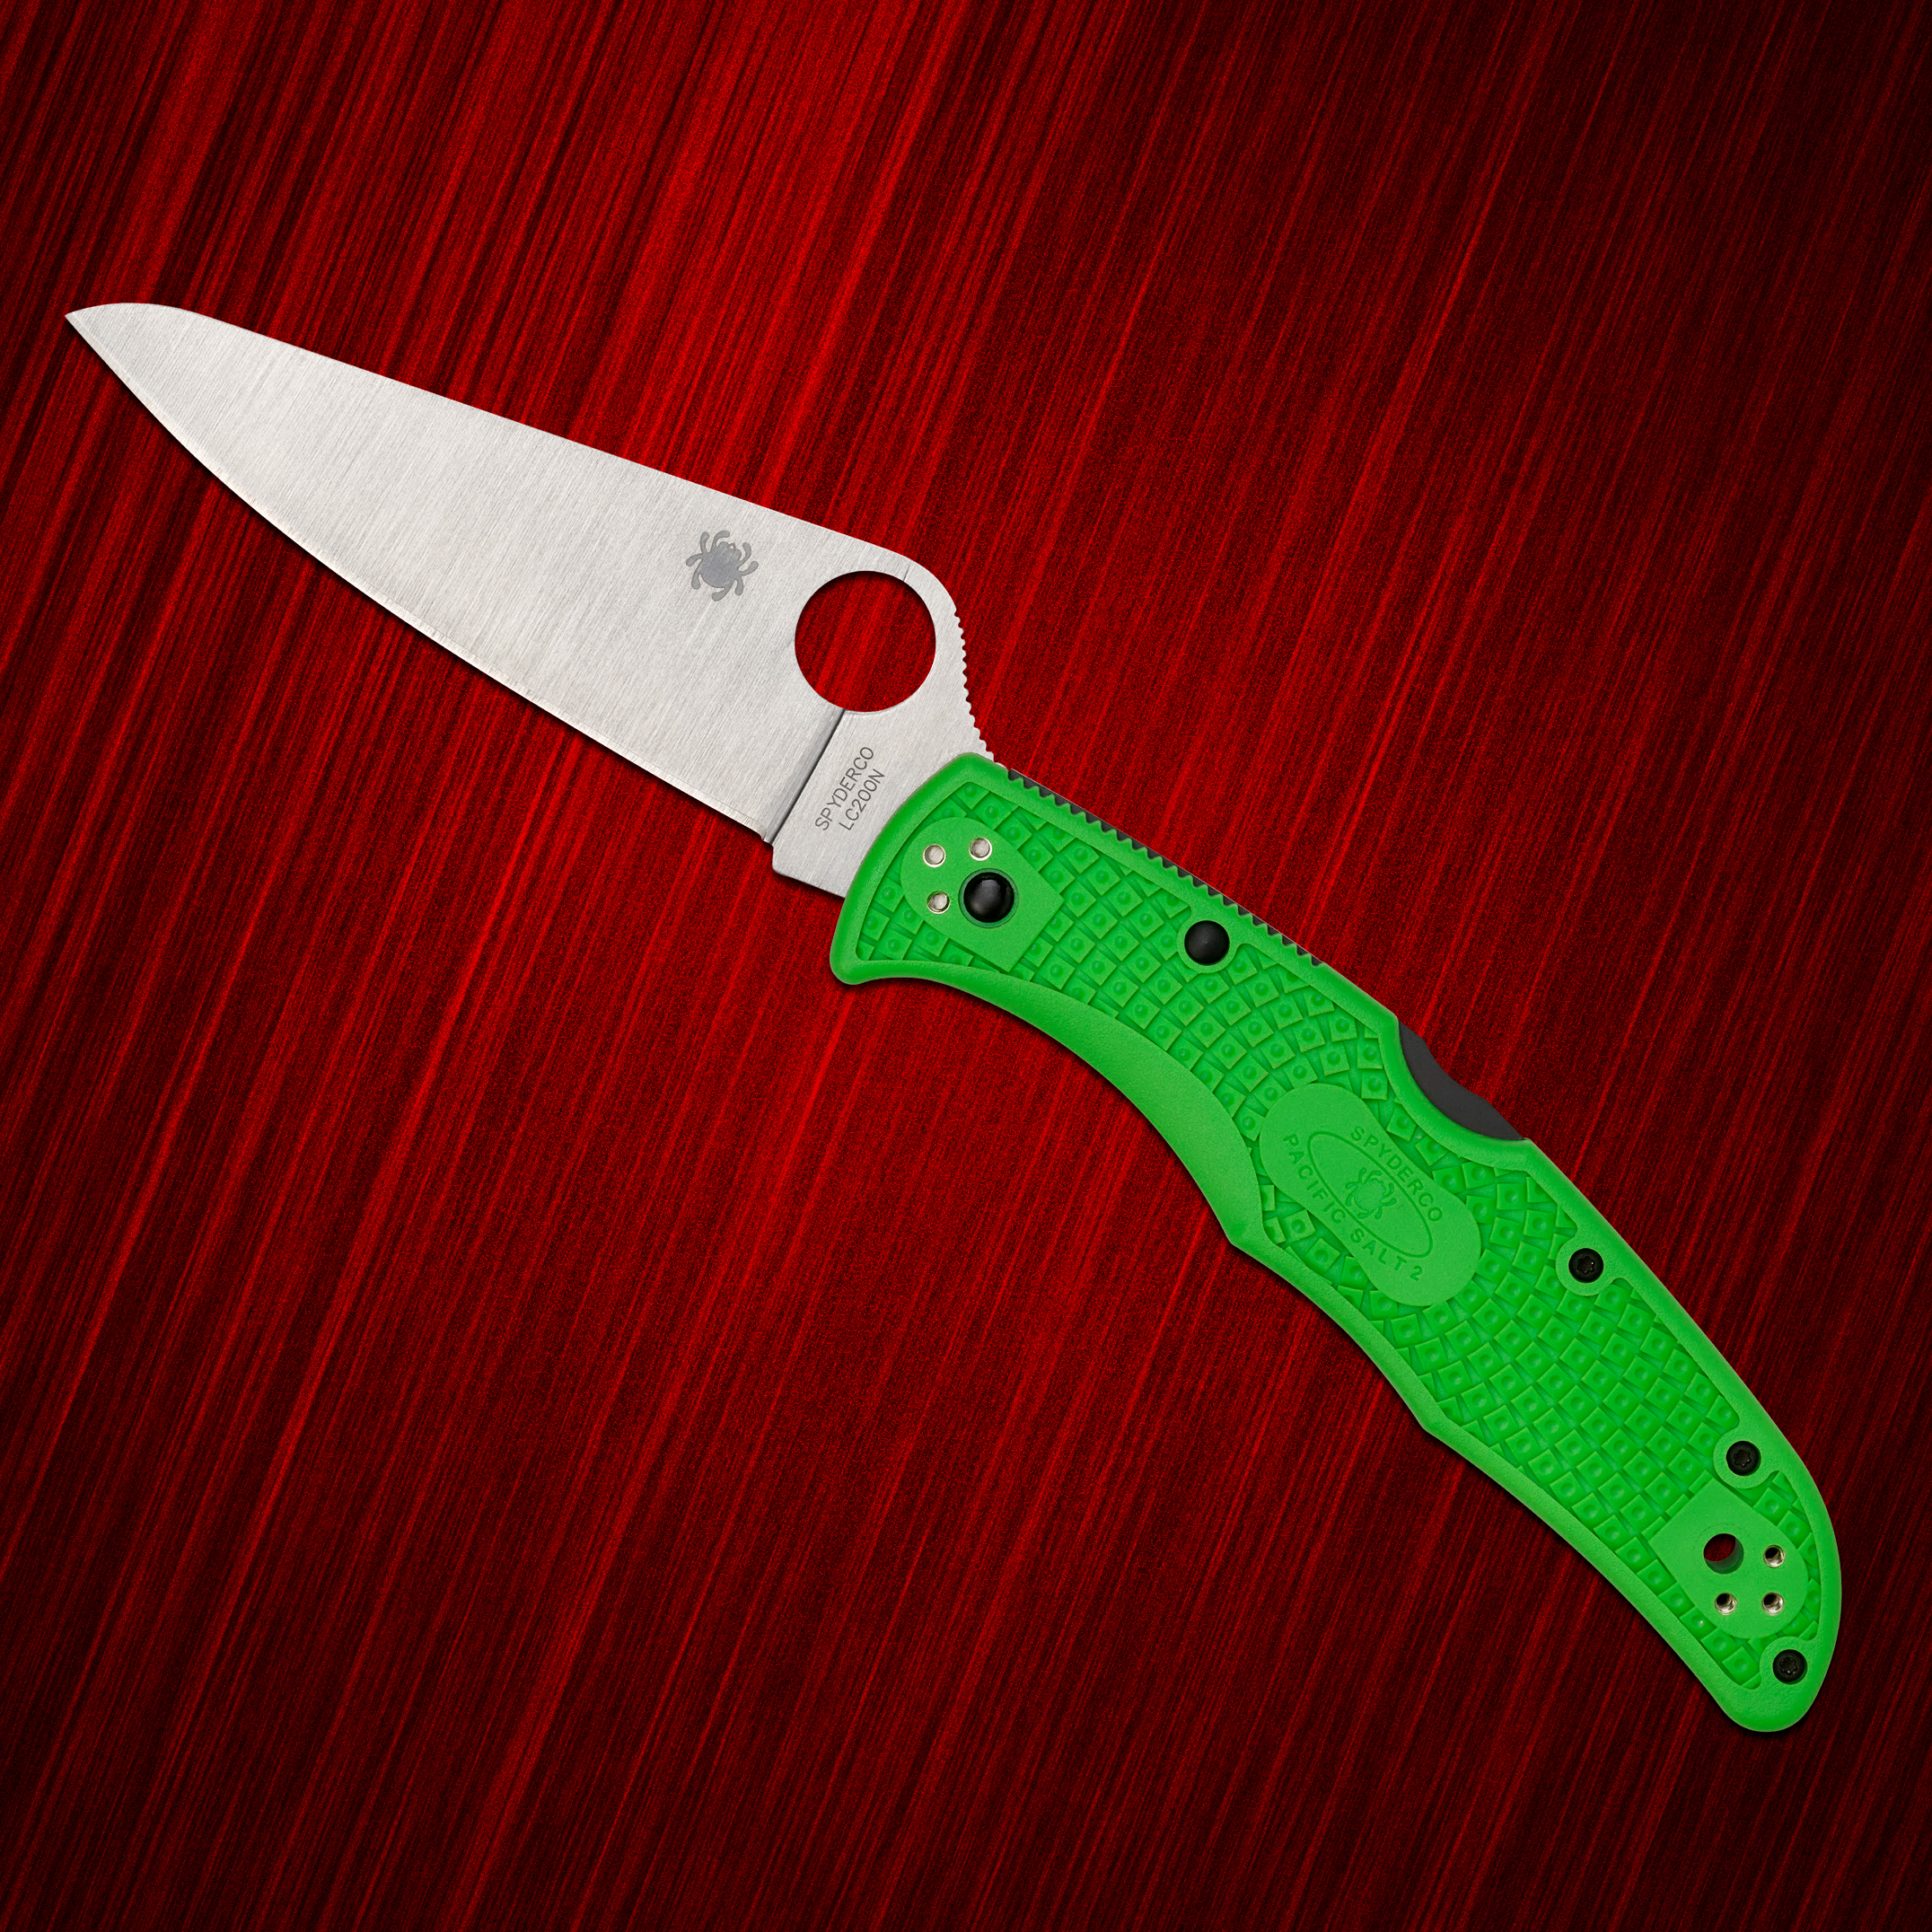 Spyderco Pacific Salt folding knife on a red background